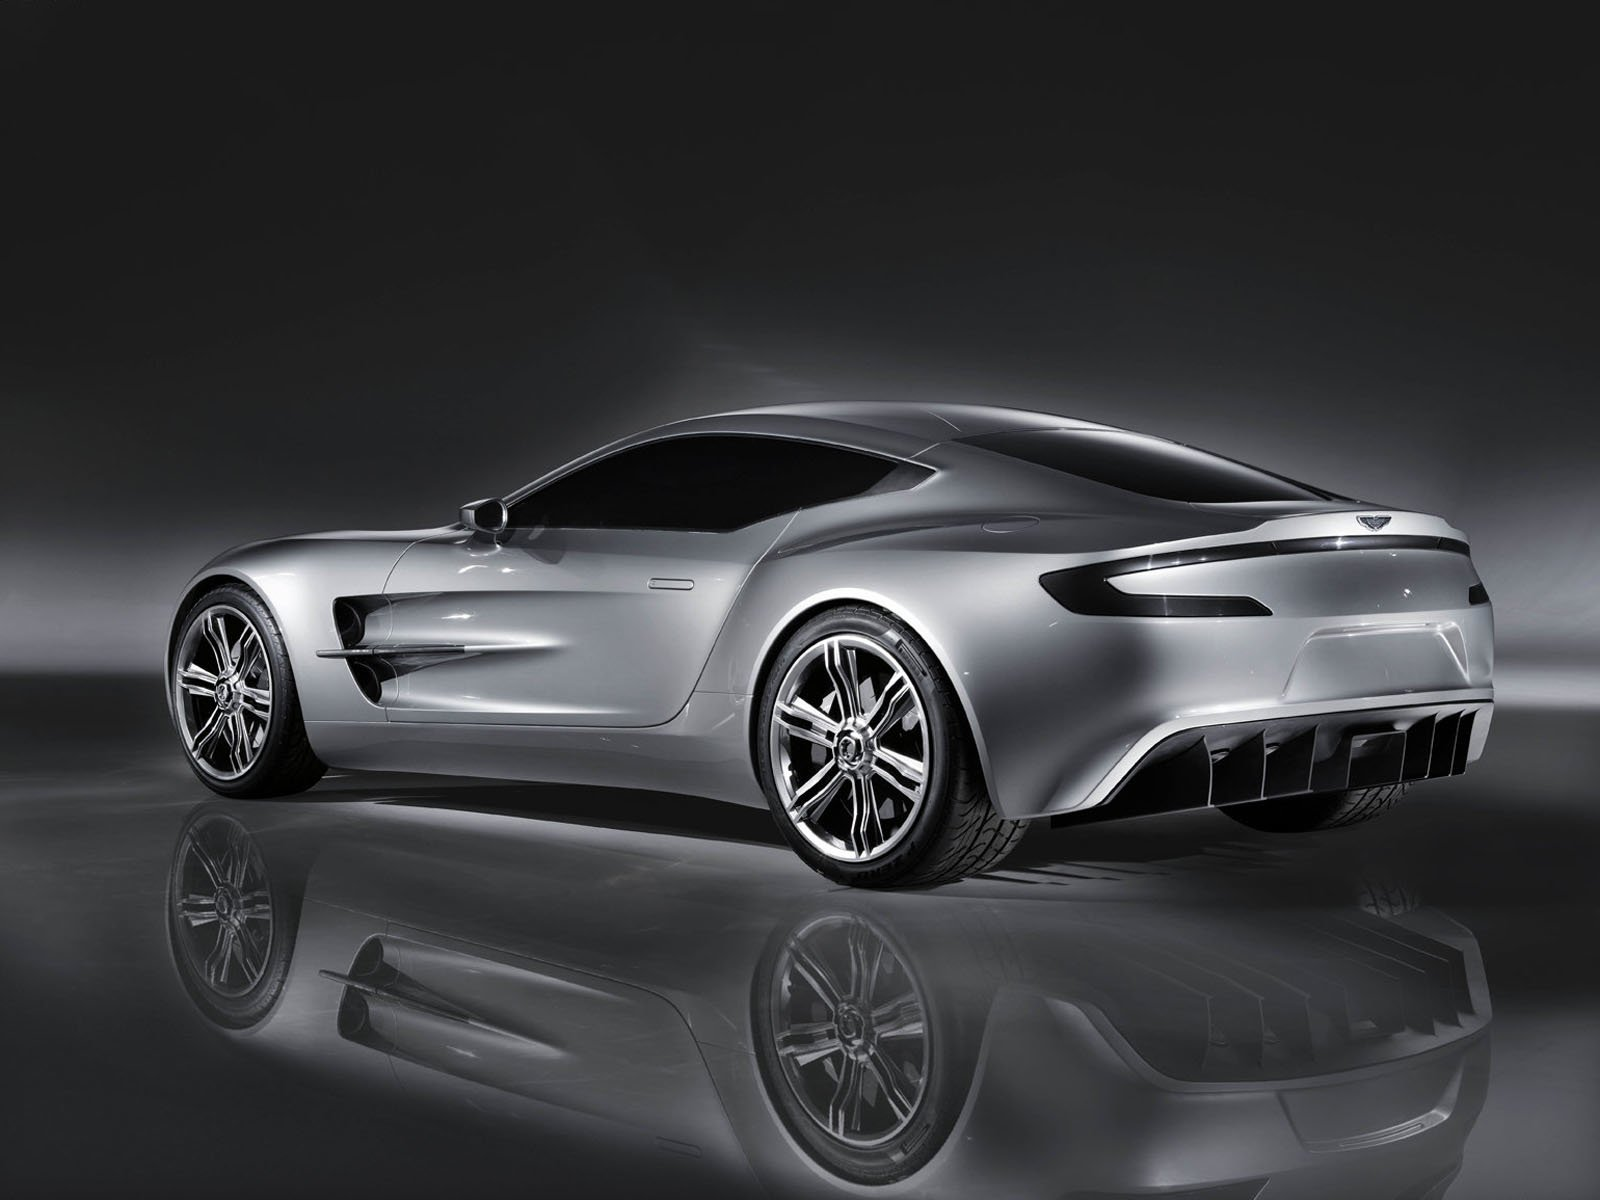 Latest Aston Martin Hd Wallpapers – Wallpaper202 Free Download